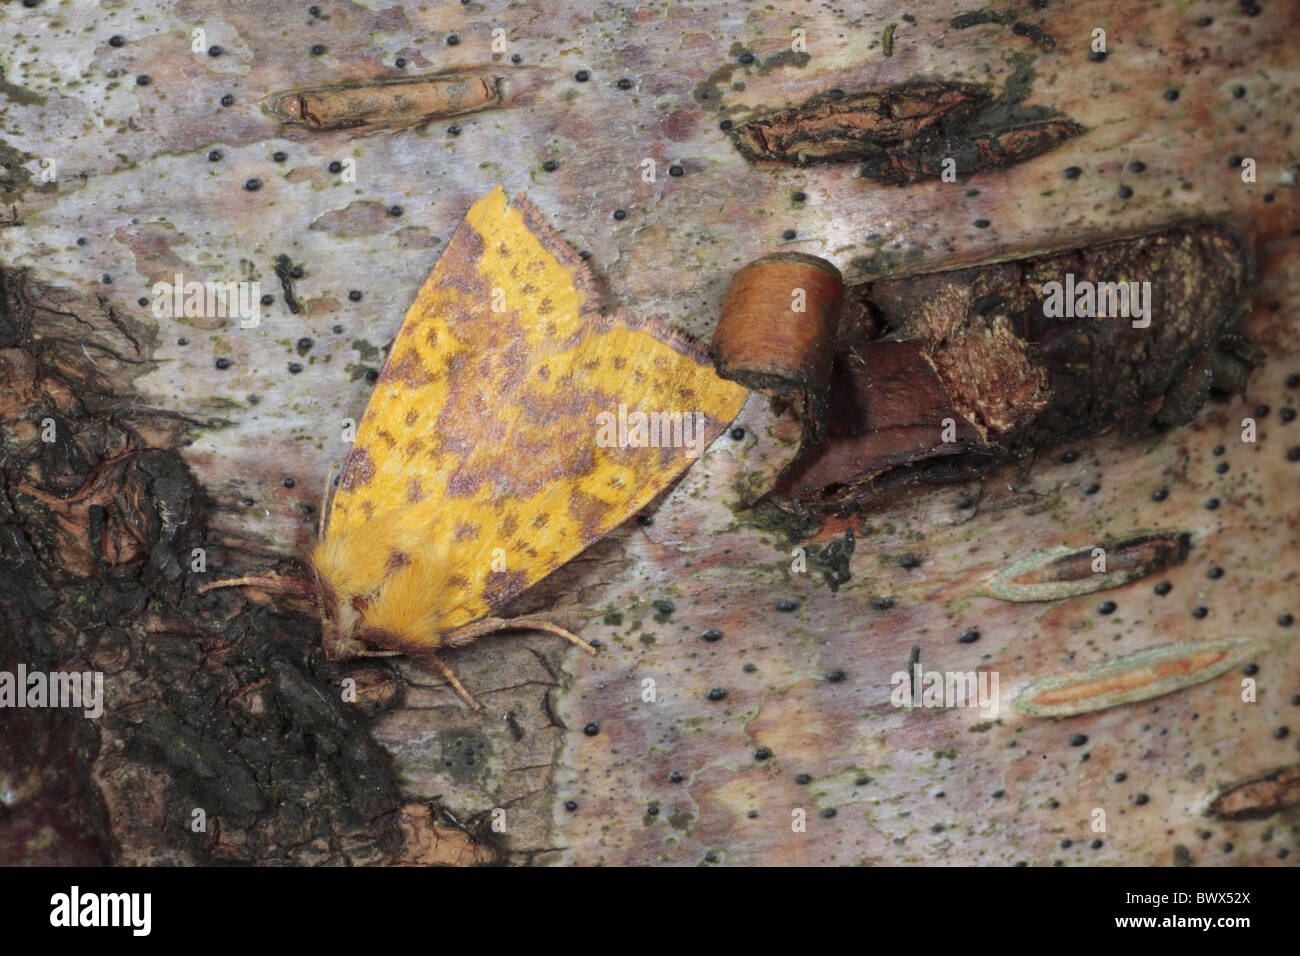 Pink-barred pink barred sallow Xanthia togata nature natural wild wildlife environment environmental europe european - Stock Image